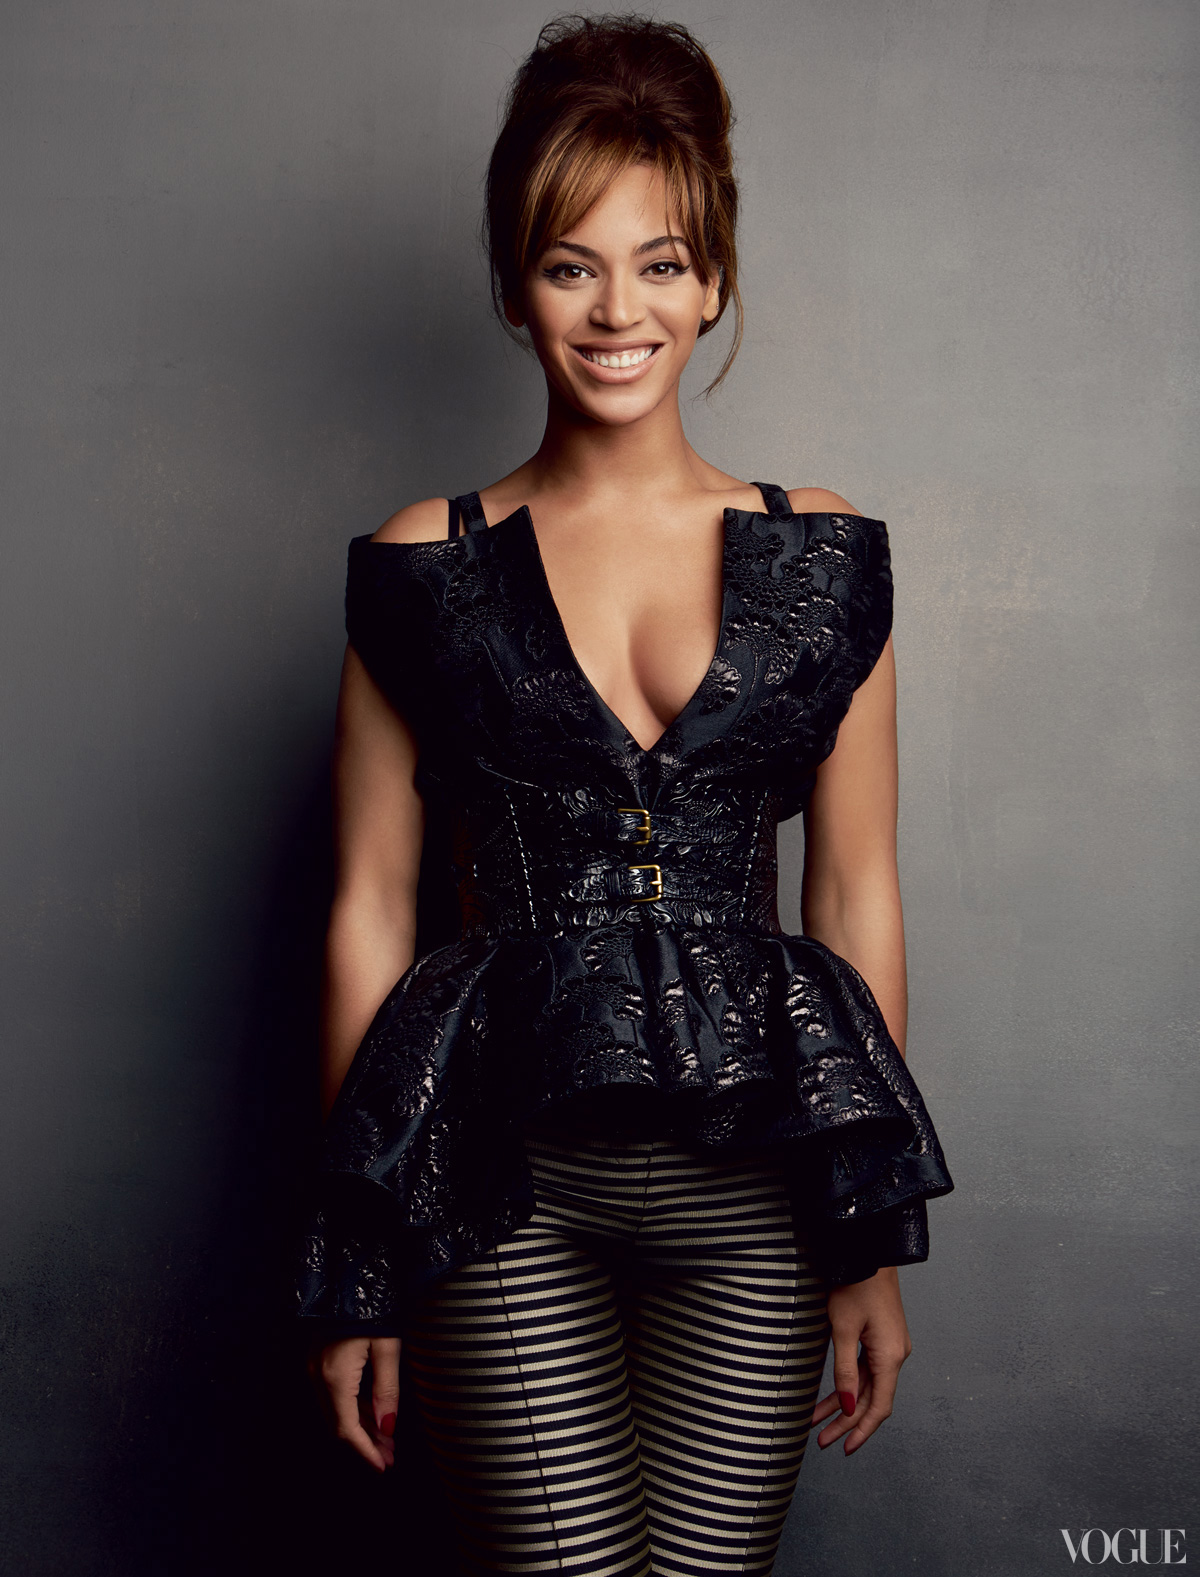 http://4.bp.blogspot.com/-1mCZ2zPB-bE/URjvndiFA8I/AAAAAAABEdg/WkHSUWe12EA/s1600/Vogue-Magazine-March-2013-Beyonce-Feature-Story-The-Gossip-Wrap-Up-1.jpg